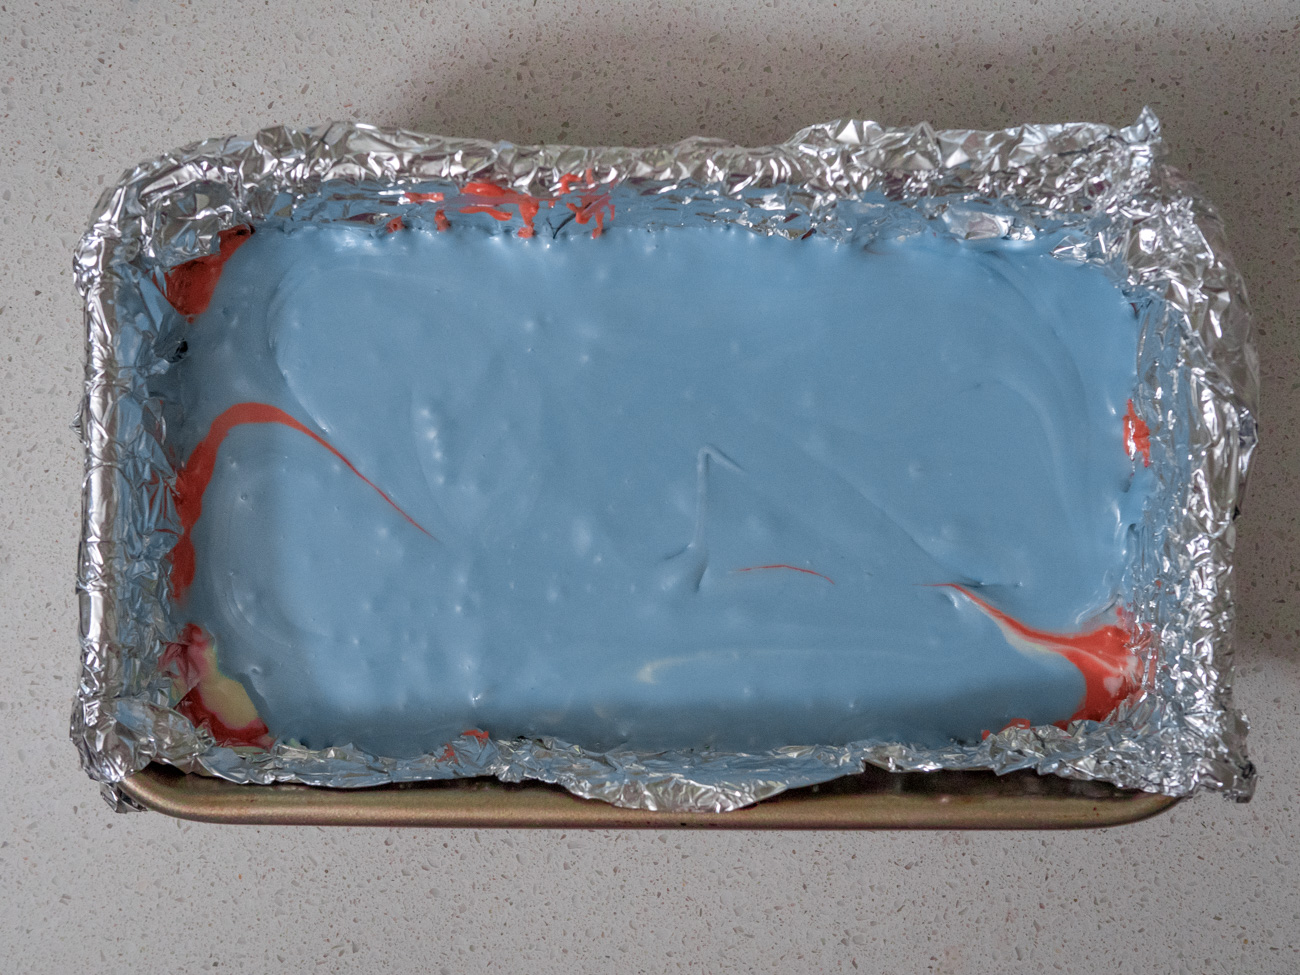 Pour the fudge into the loaf pan in layers in the order of red, white, and finally blue. Smooth each layer with the back of a clean spoon.